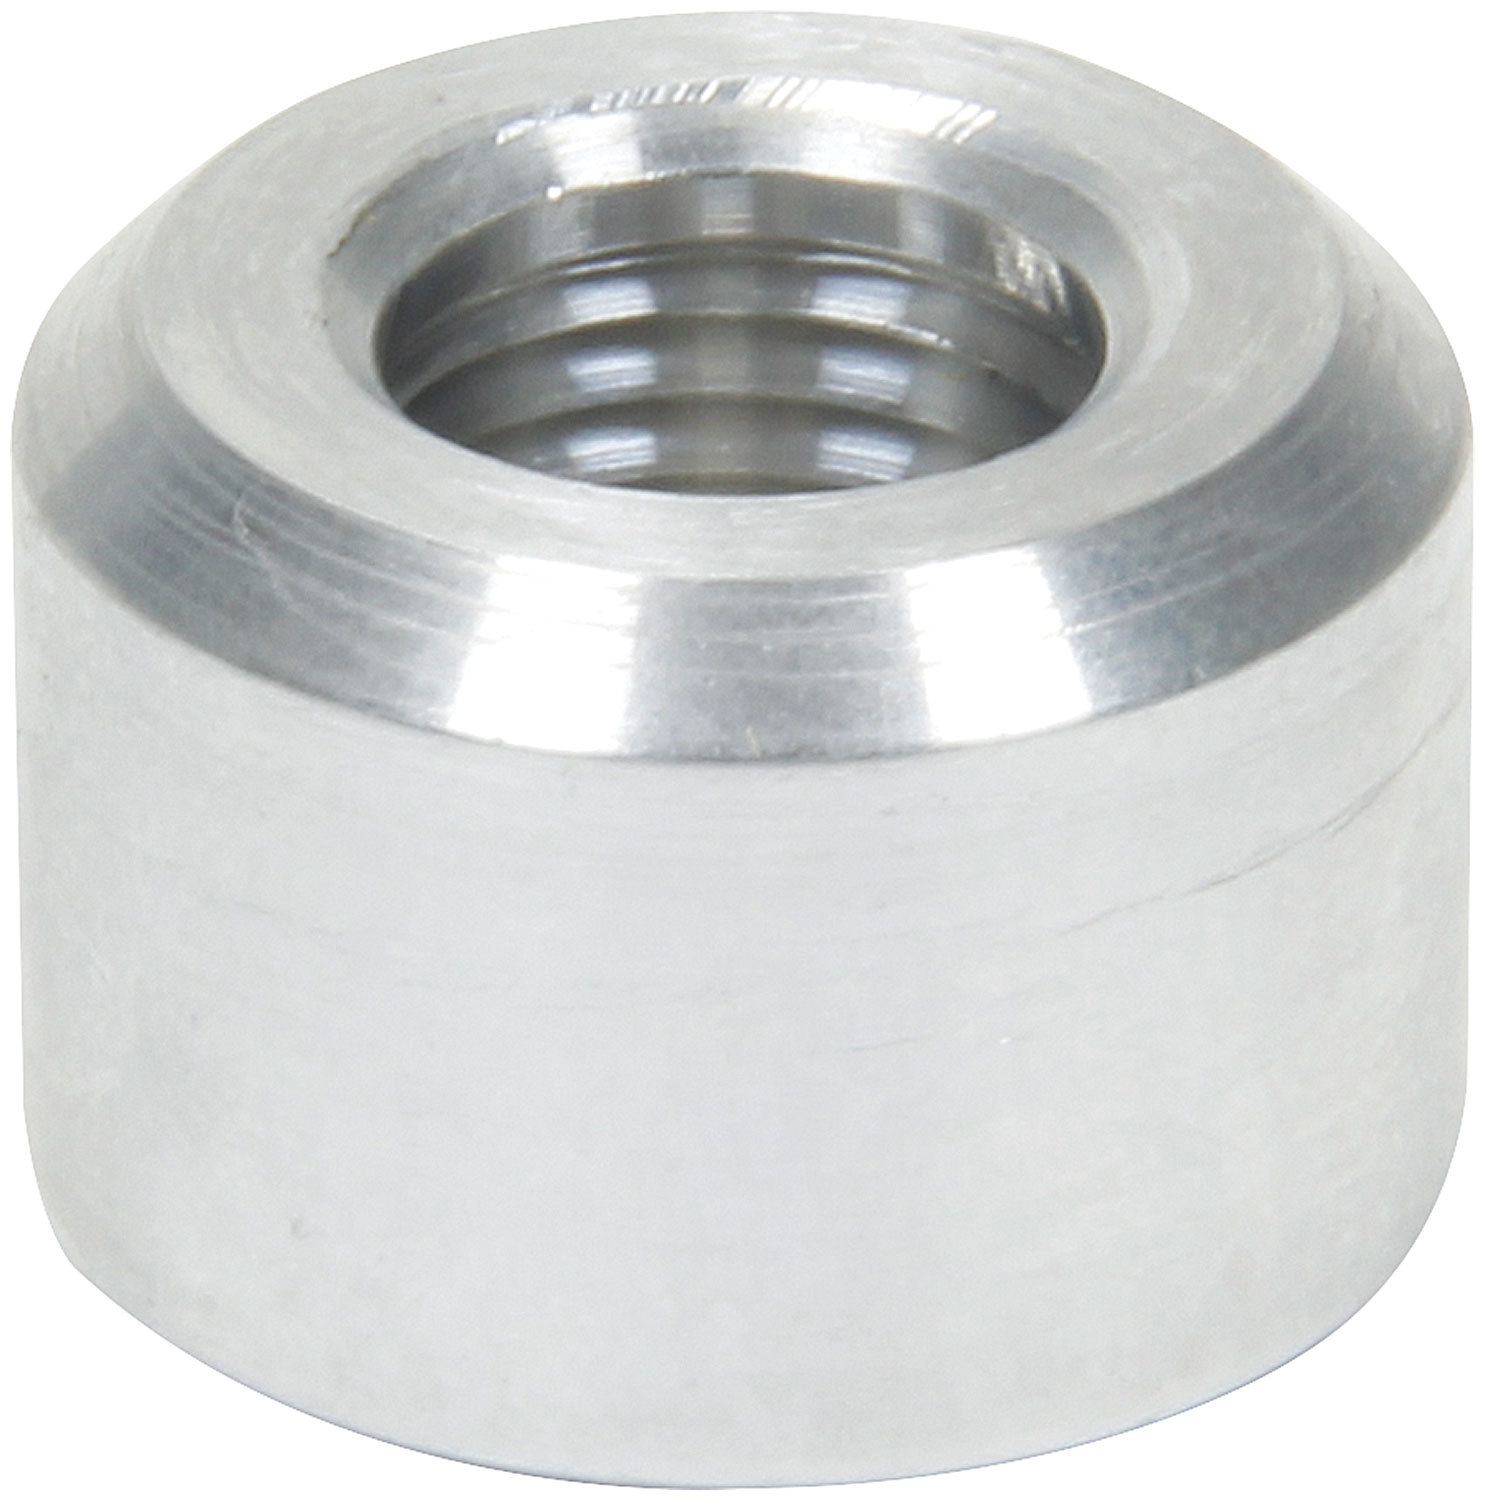 Allstar Performance 50740 Bung, 1/8 in NPT Female, Weld-On, Aluminum, Natural, Each